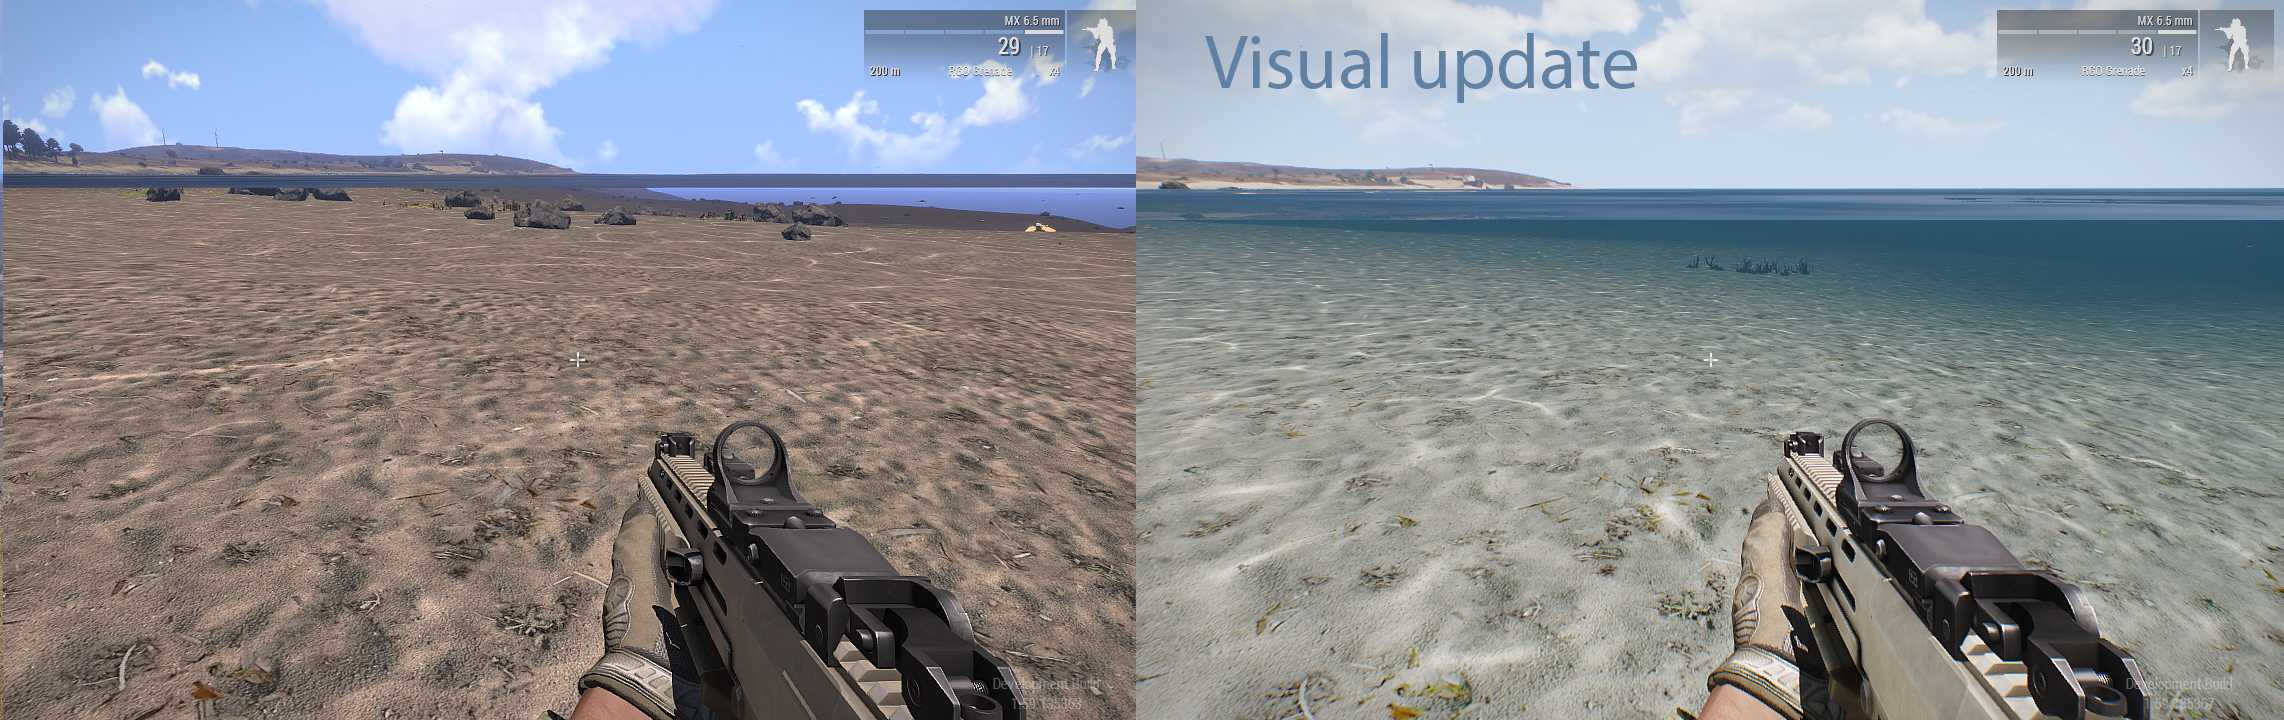 OPREP Visual Update Arma - Arma 3 us maps